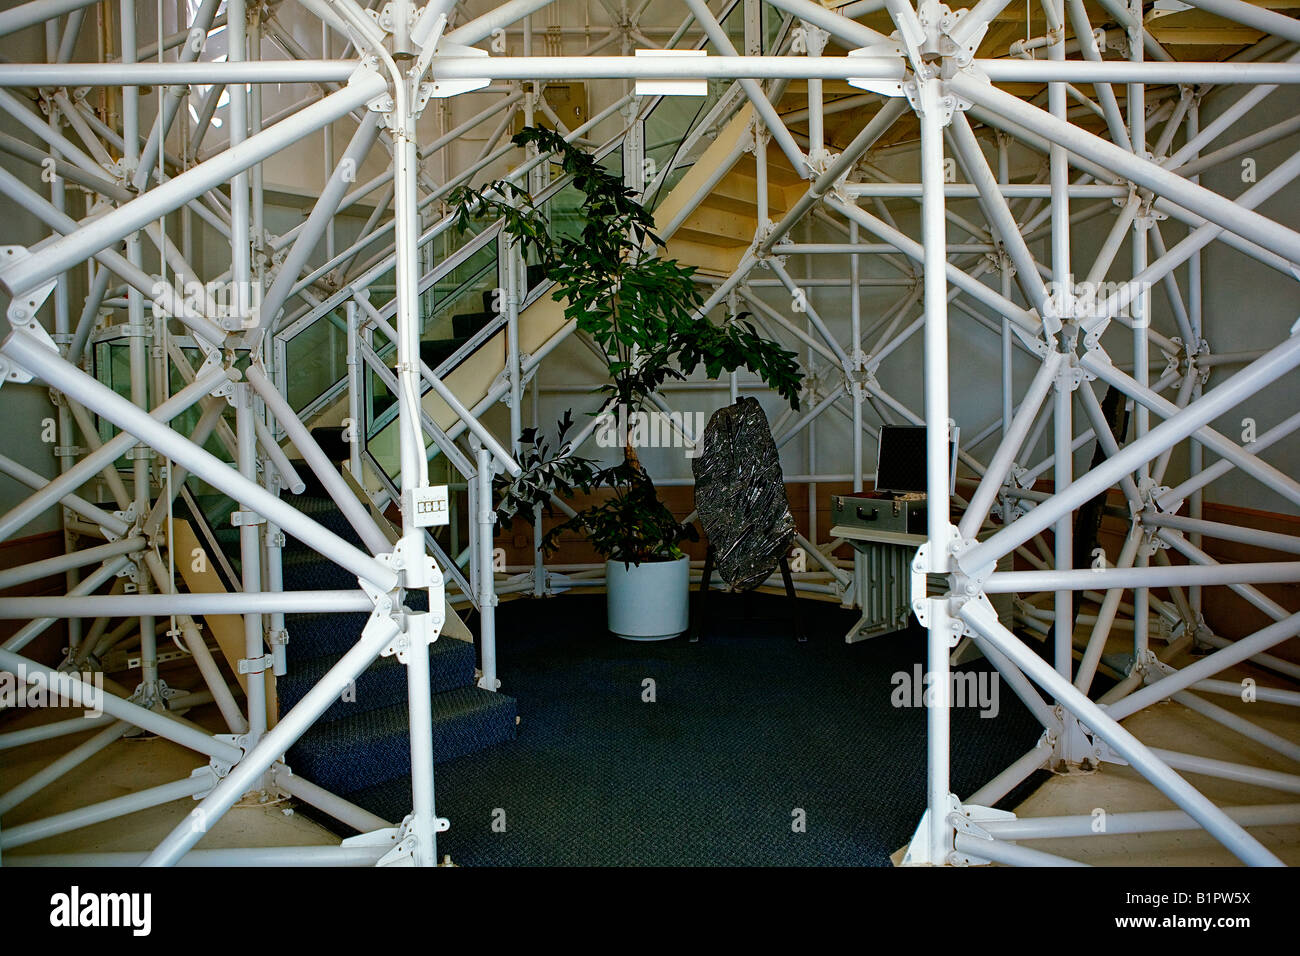 Image looking in through the interior structure of the ...